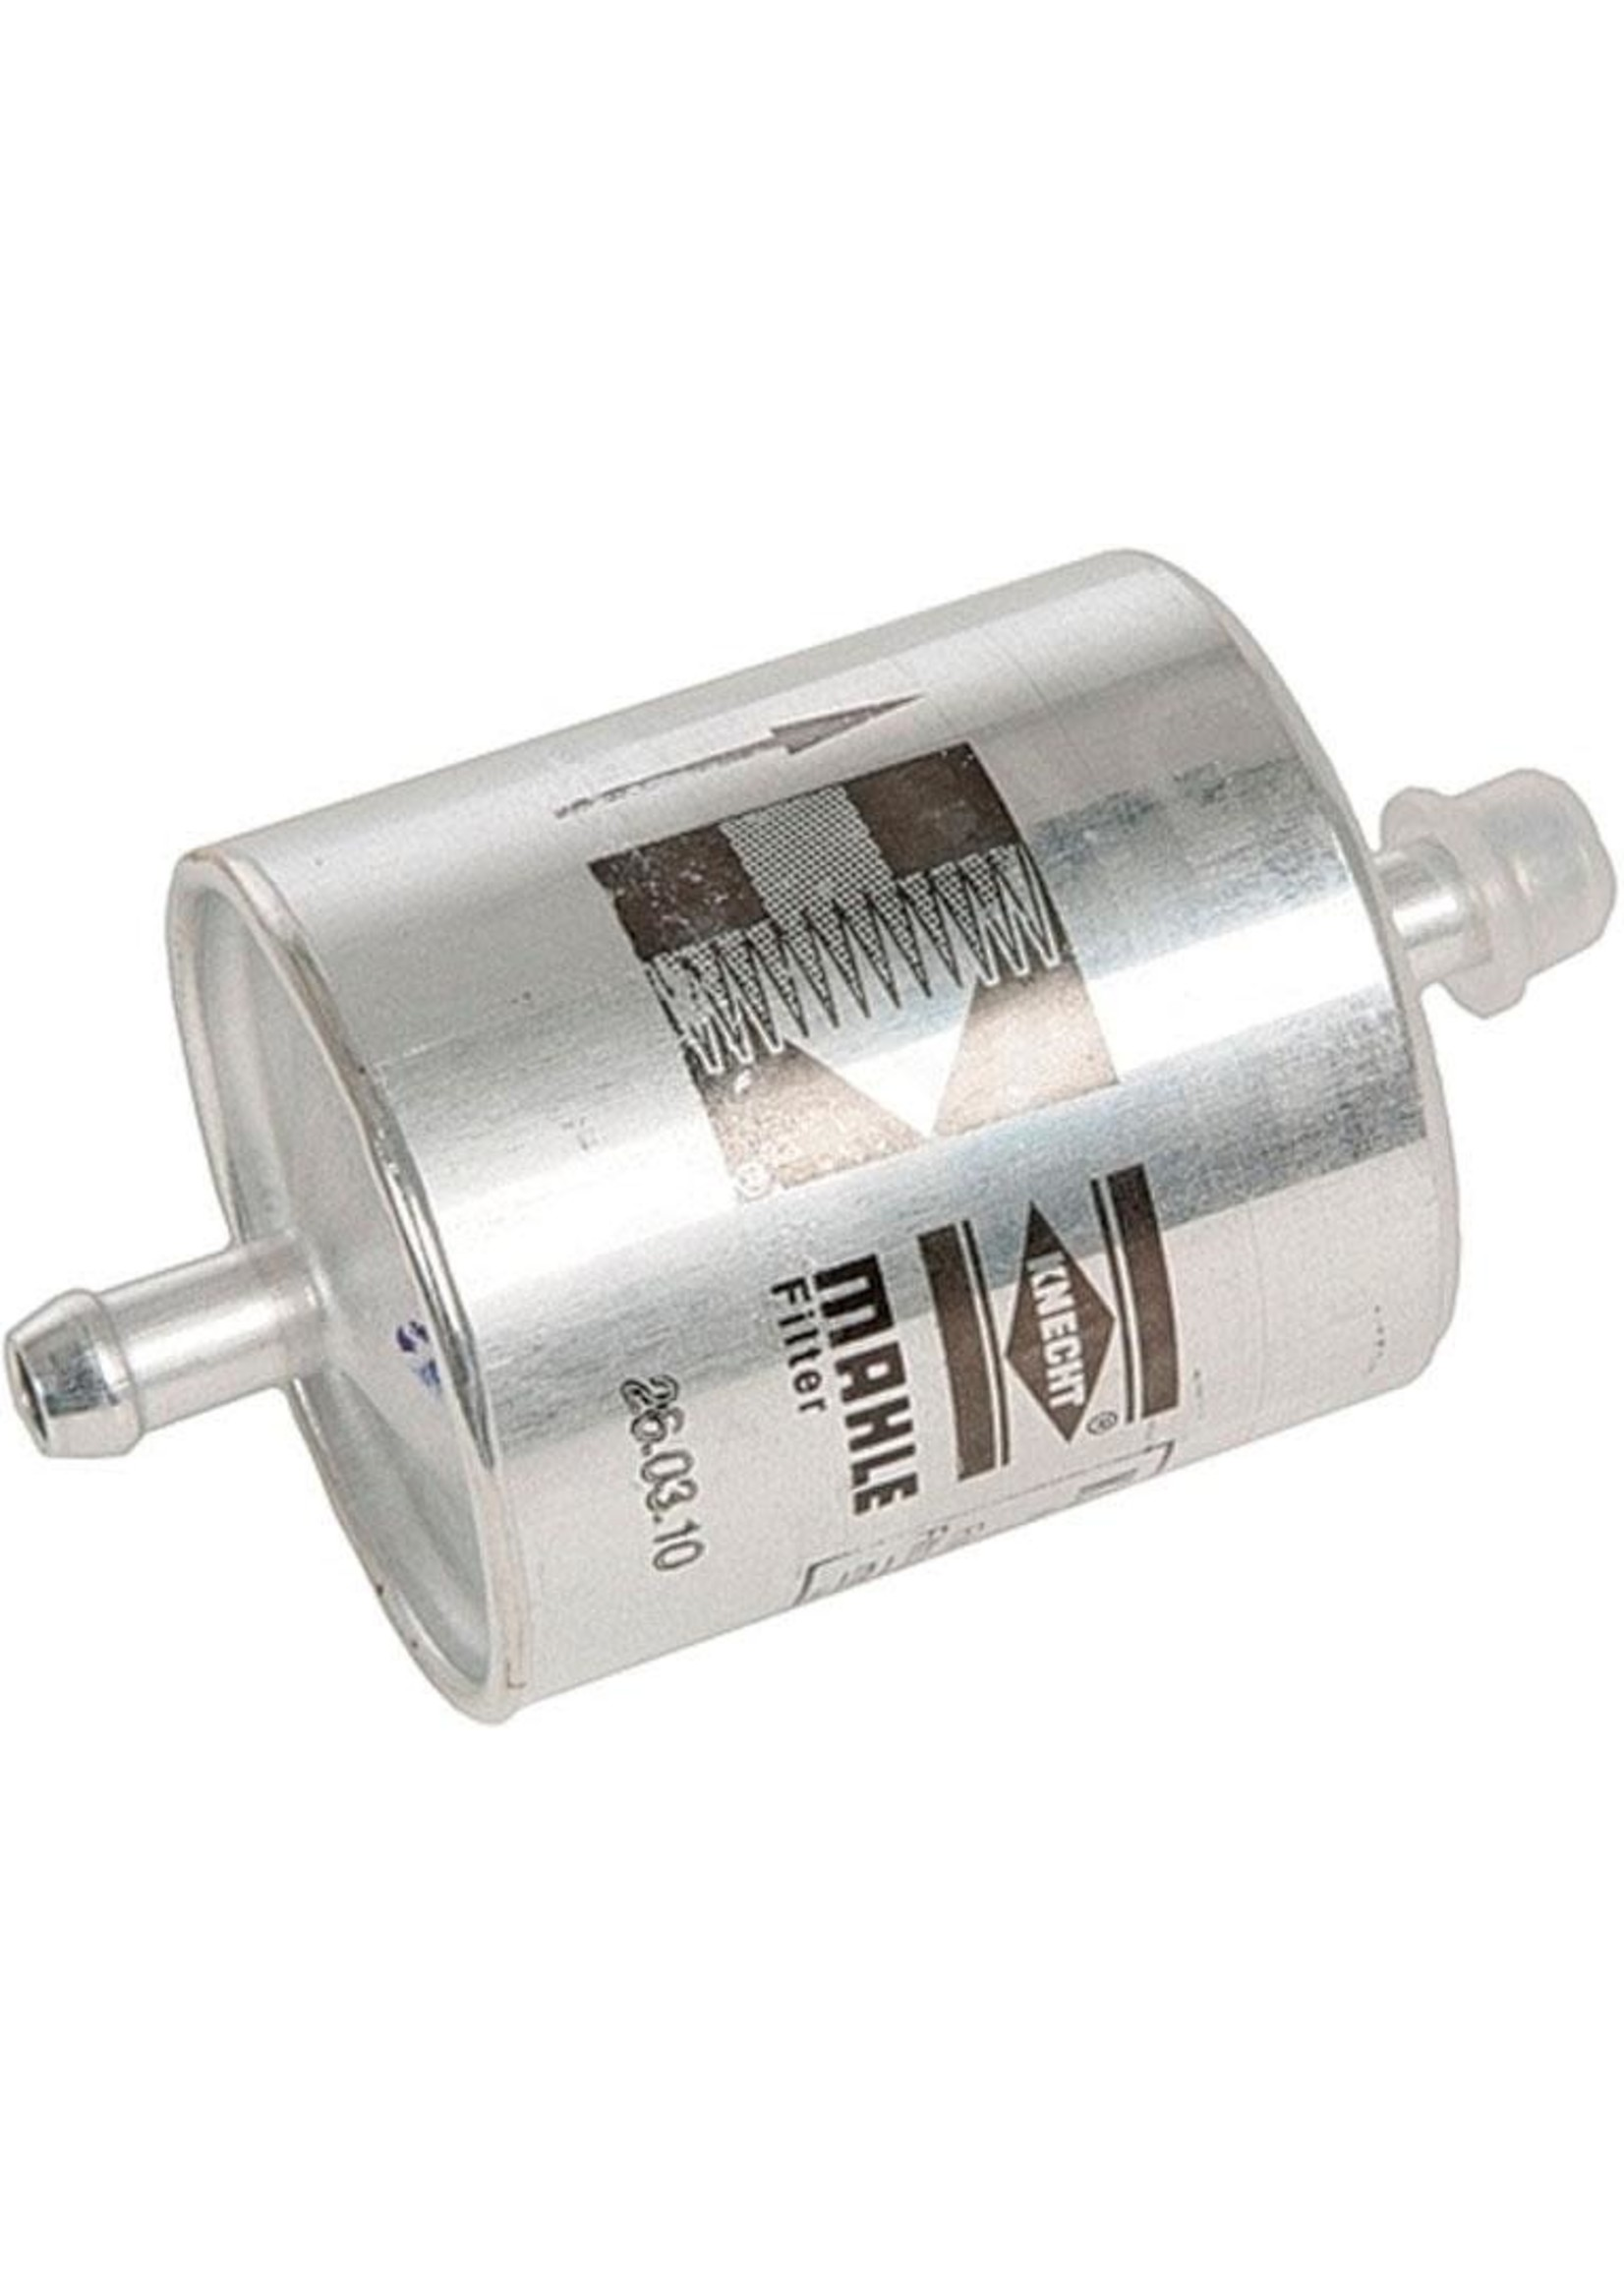 MAHLE Mahle Fuel Filter KL145